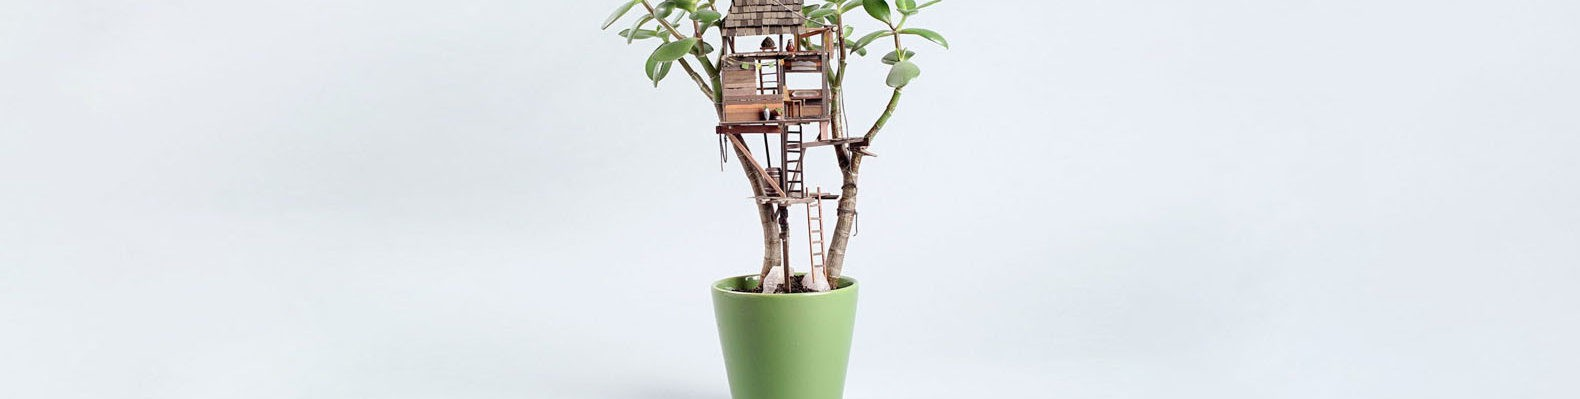 green design, eco design, sustainable design, Jedediah Cory Voltz, bonsai trees, tree house, Virgil Normal